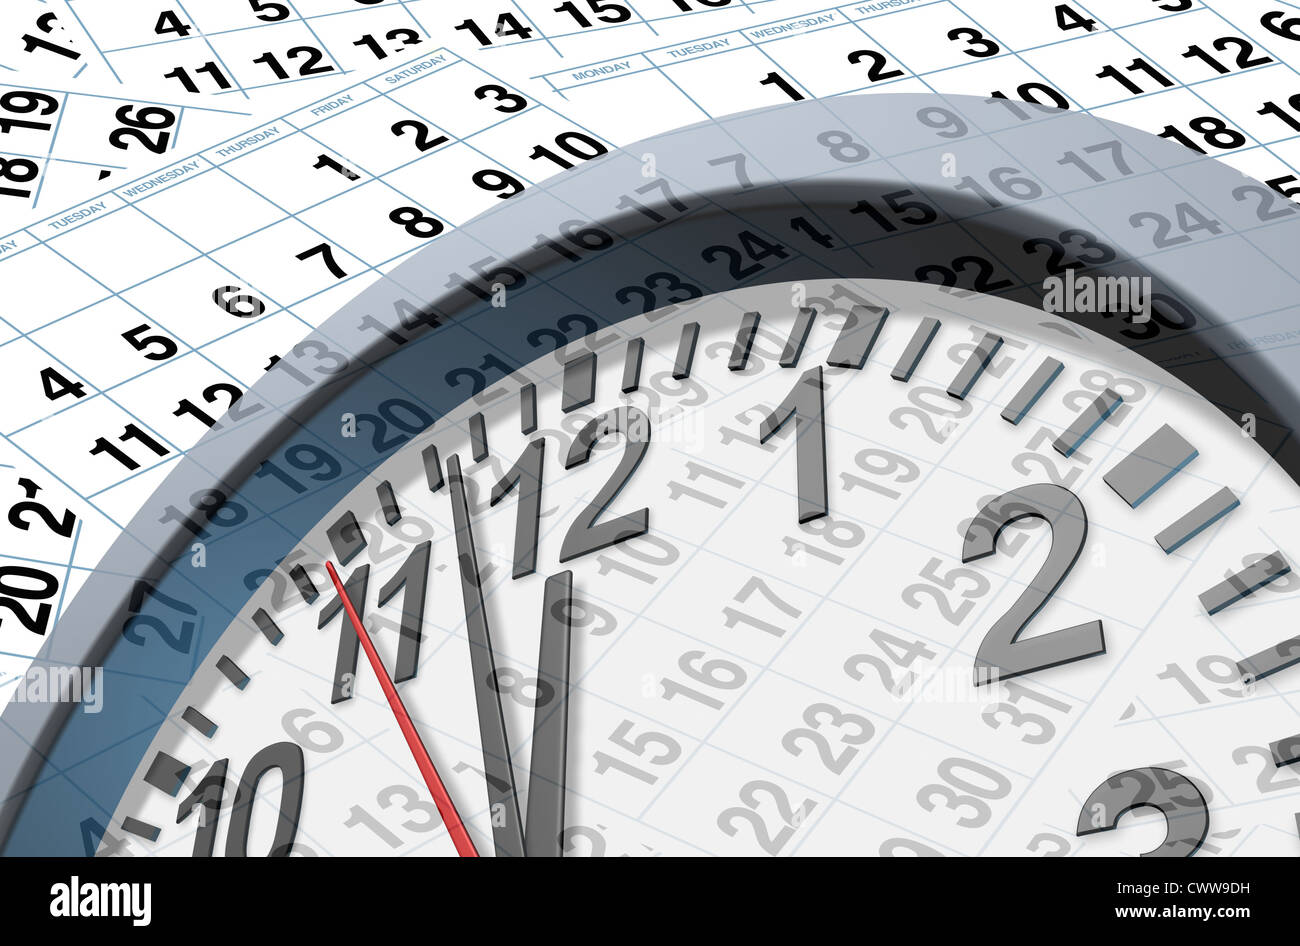 Deadlines and time symbol with calendar pages representing time and important dates in a month or days of the week. - Stock Image